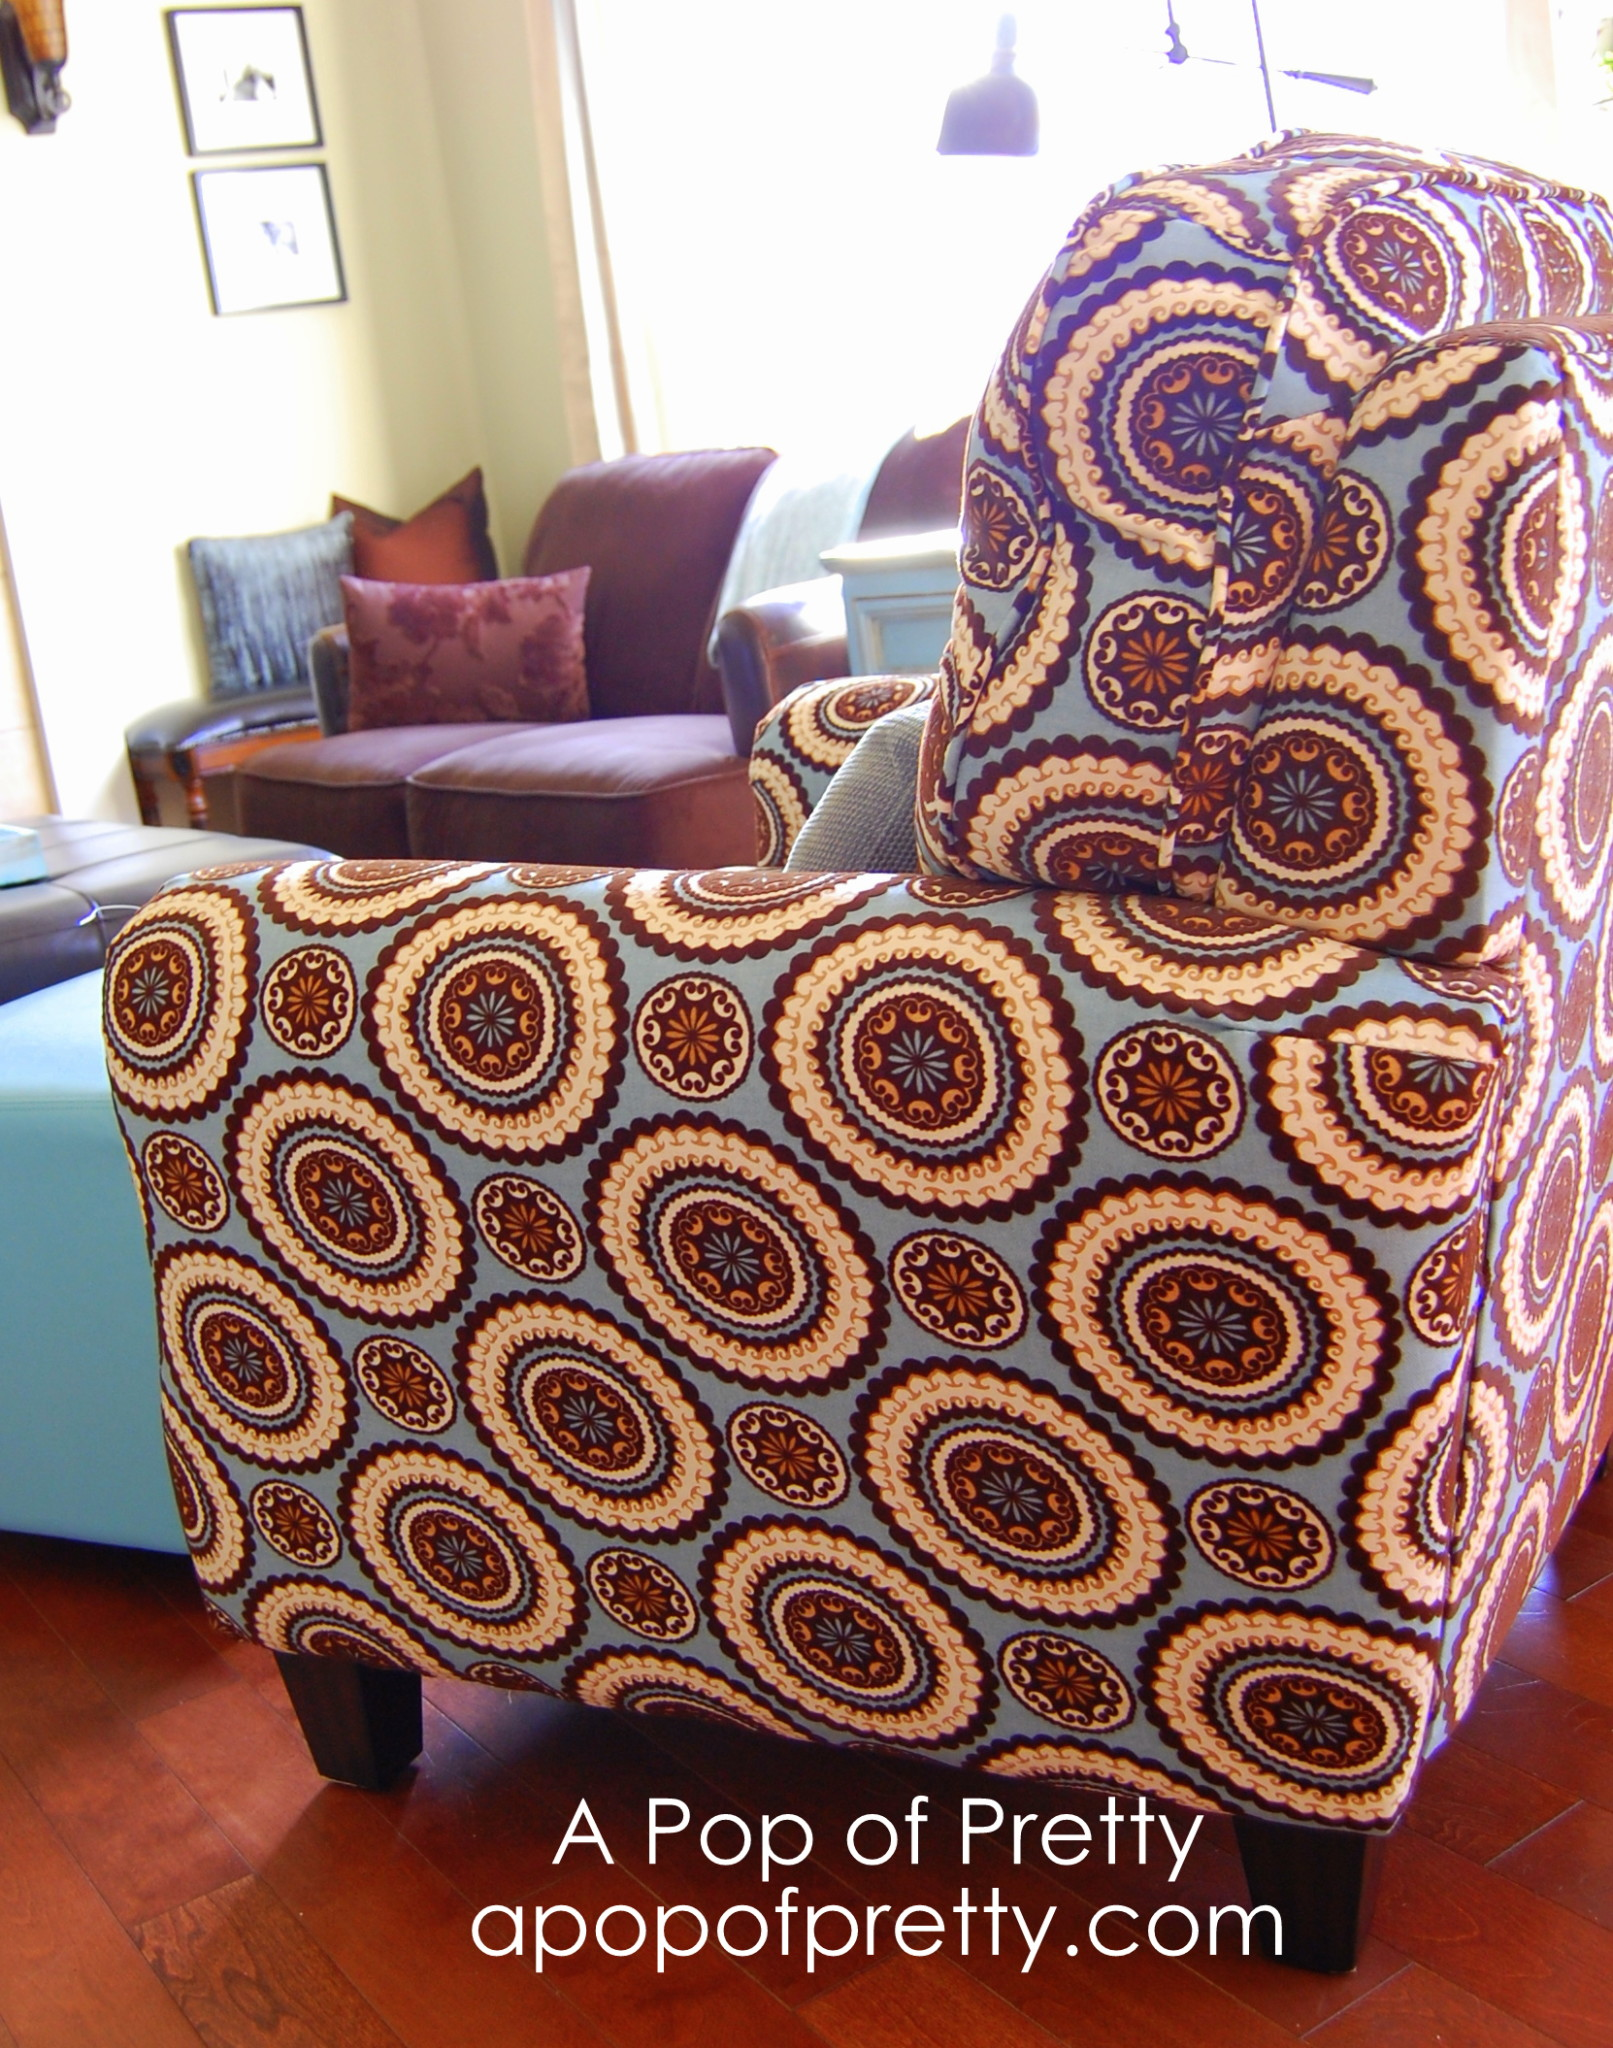 Every room needs a statement chair!